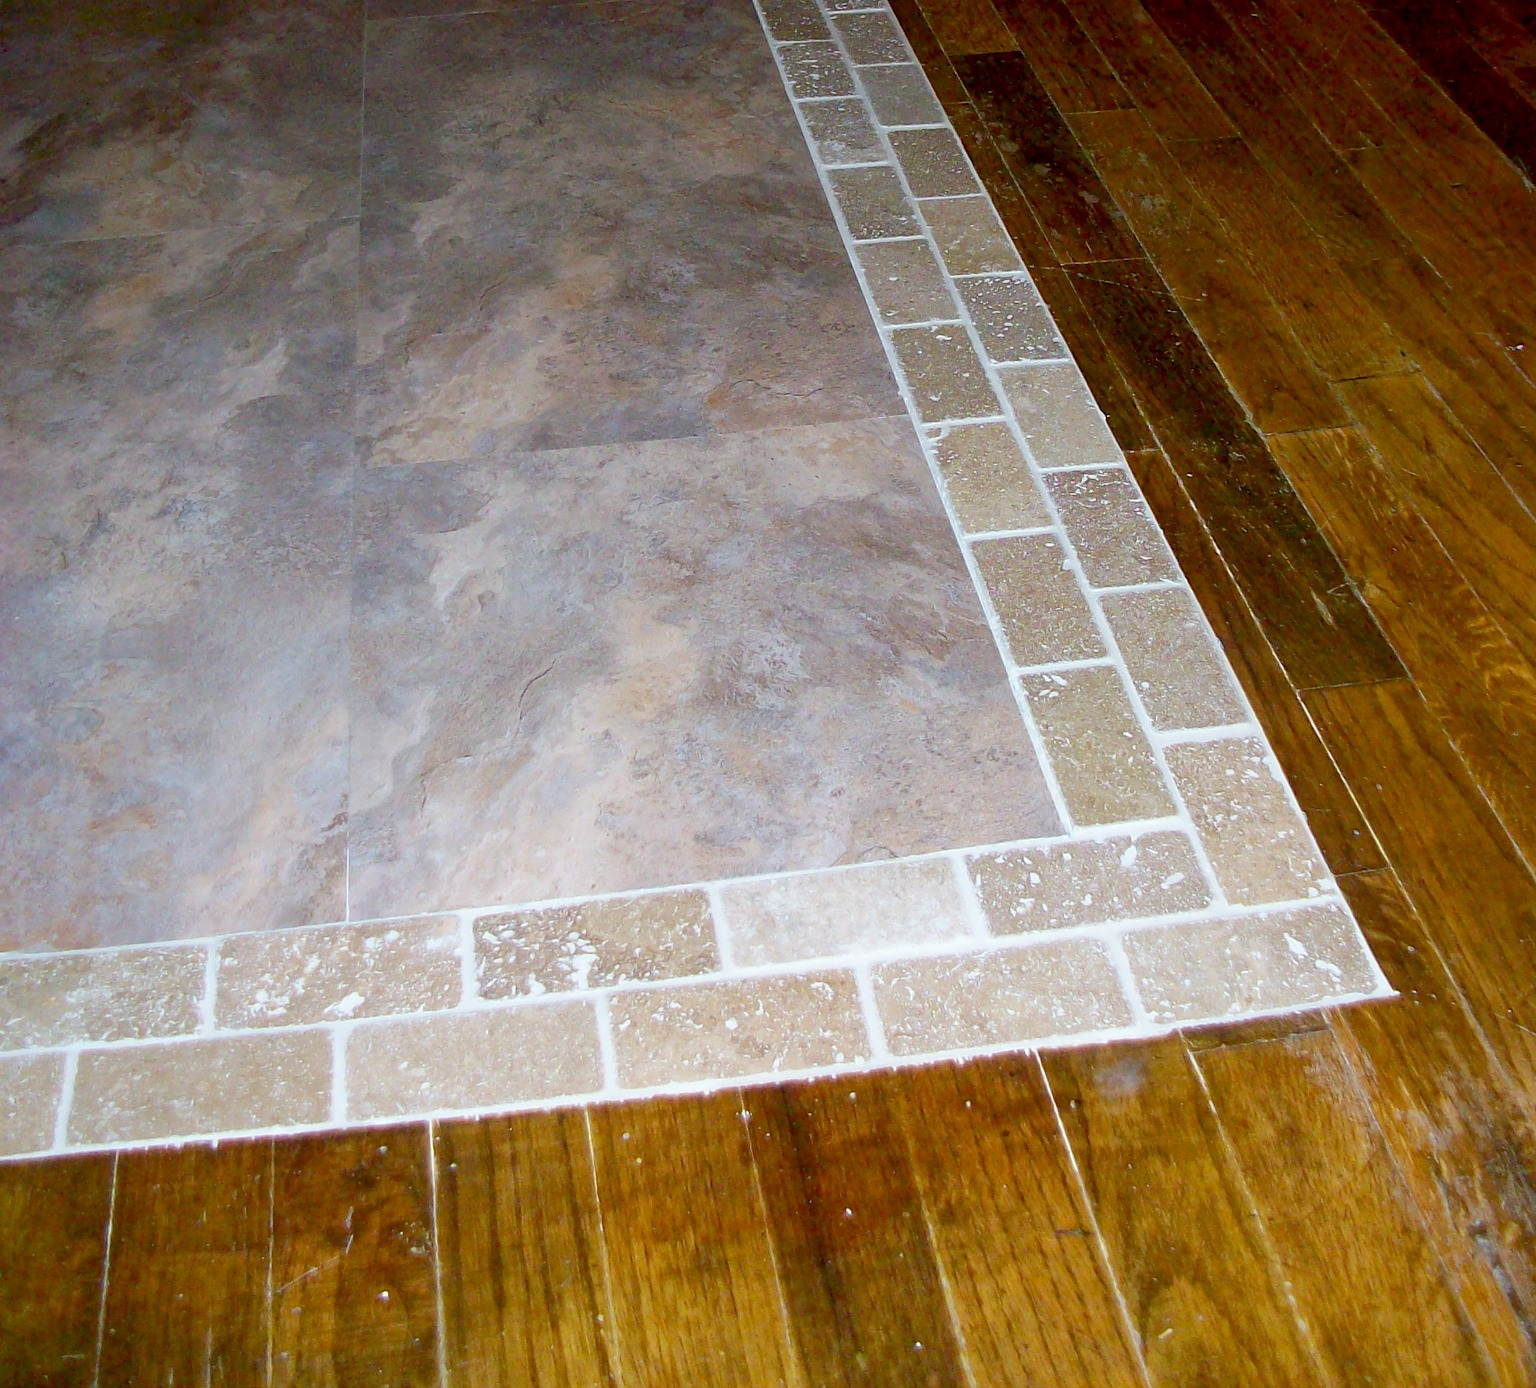 tile to wood transition - Homesteading Wife: Wood Floor to Tile Transition tile wood transition